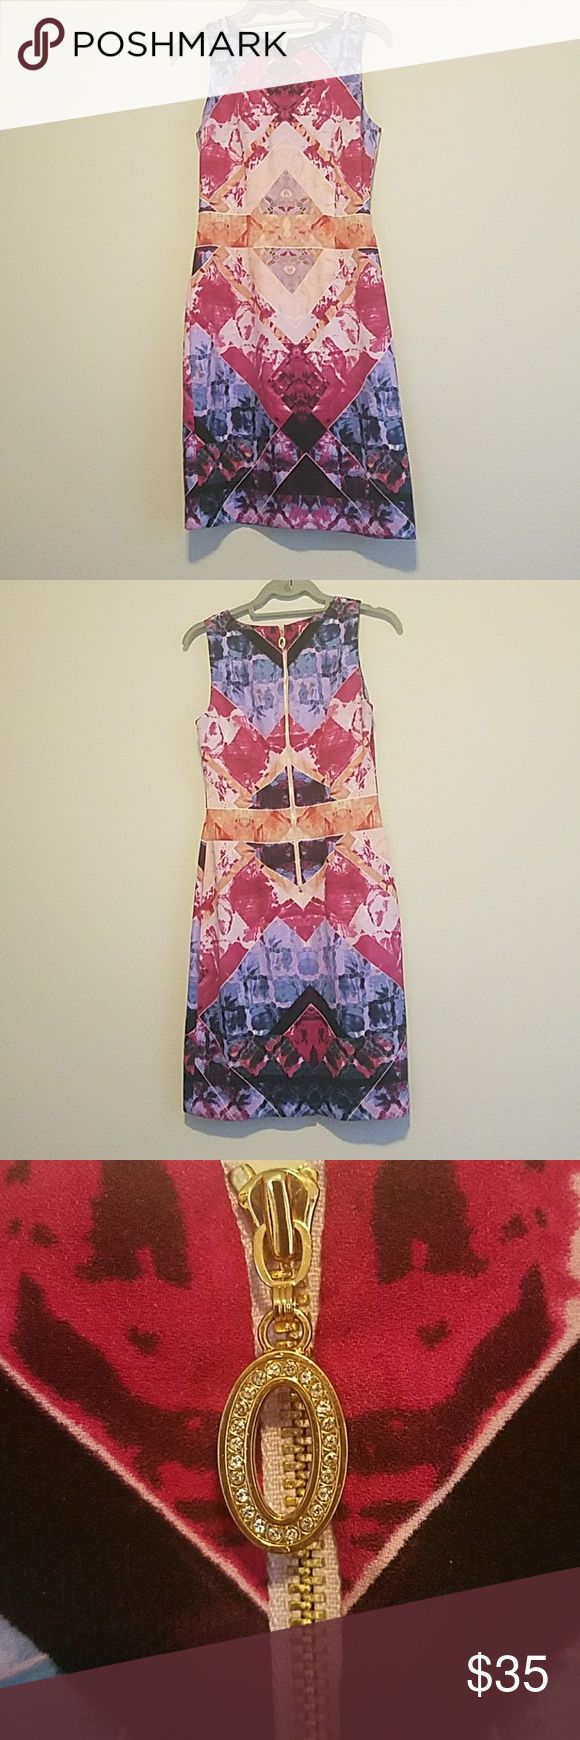 Ivanka Trump dress Colorful Ivanka Trump fitted dress. Purchased from Saks last year, and has only been worn a handful of times since! Ivanka Trump Dresses